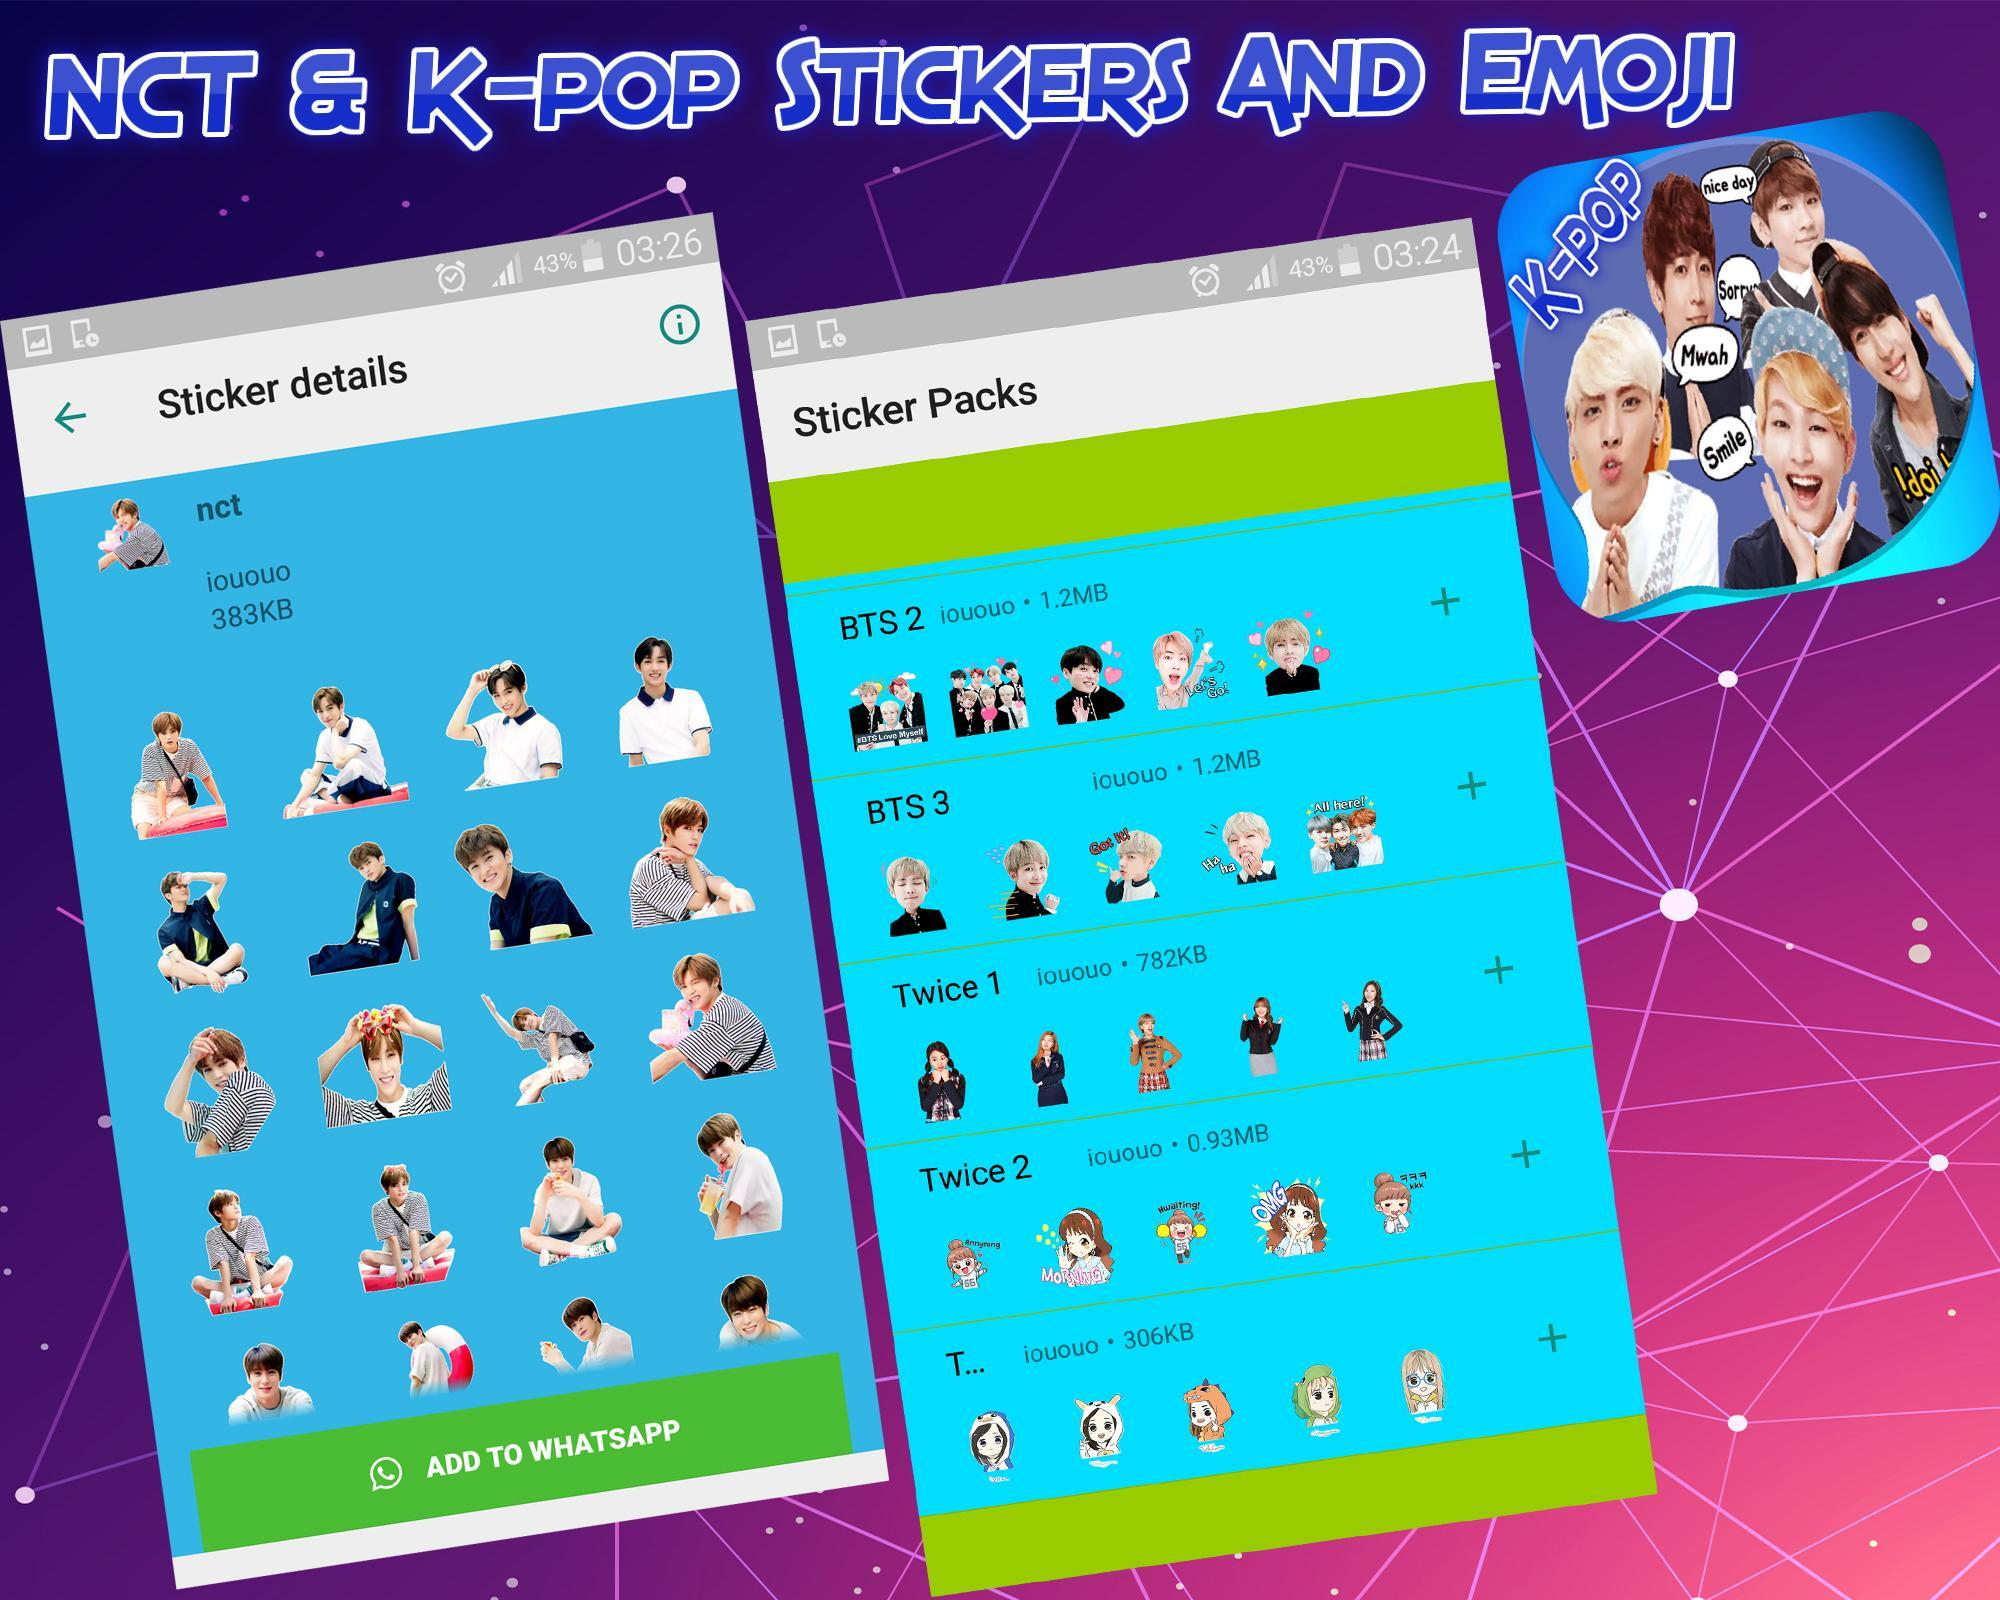 Kpop Stickers For Whatsapp Pro 2019 for Android - APK Download